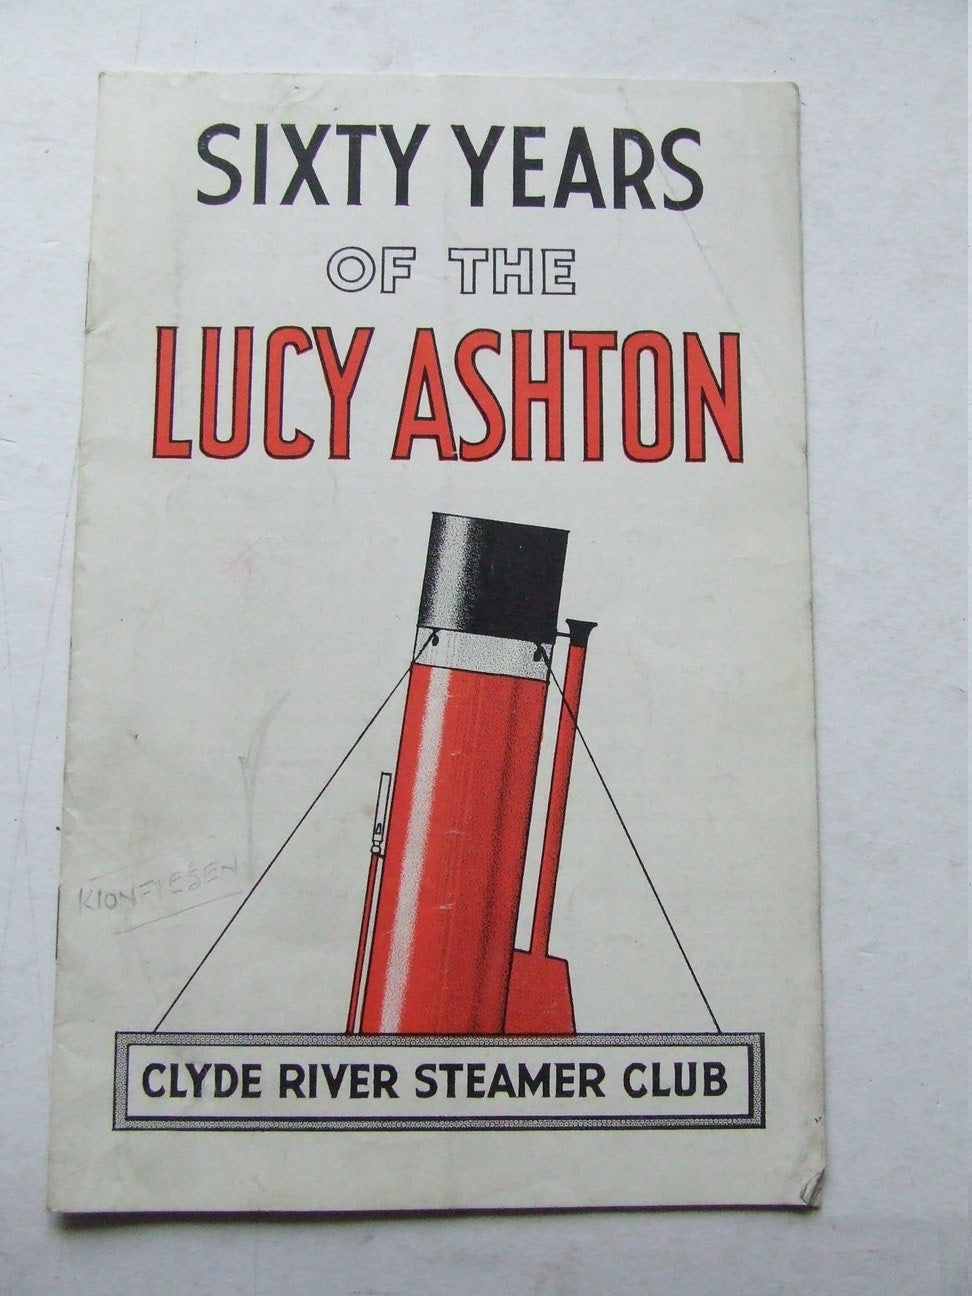 Sixty Years of the Lucy Ashton